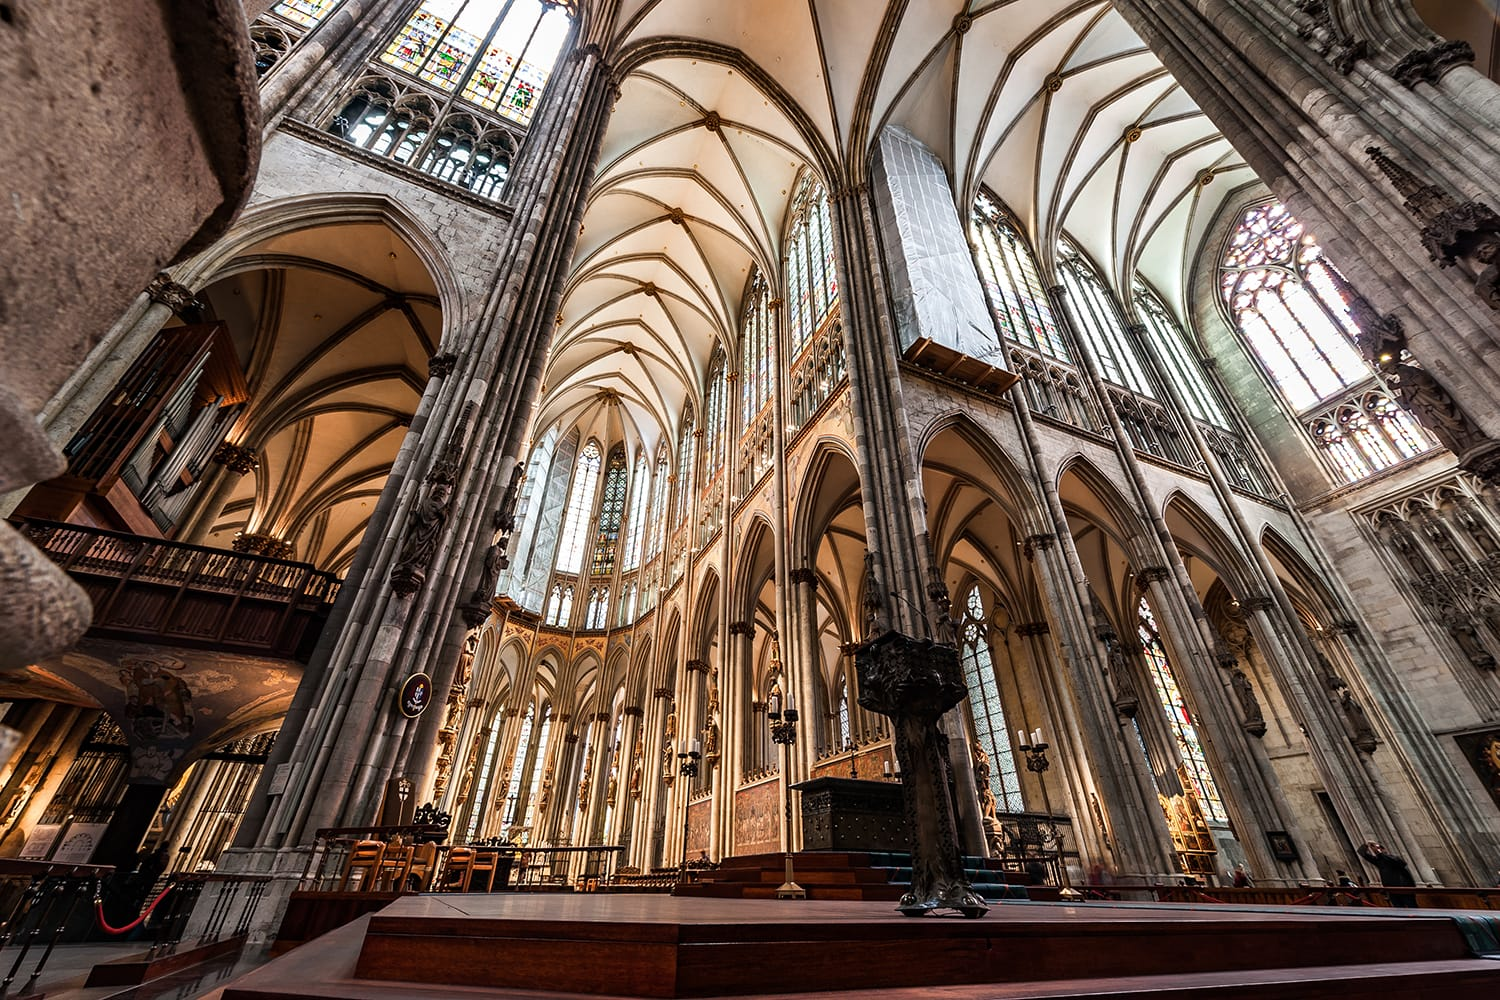 Cologne Cathedral Interior and Stained Glass Windows. Germany